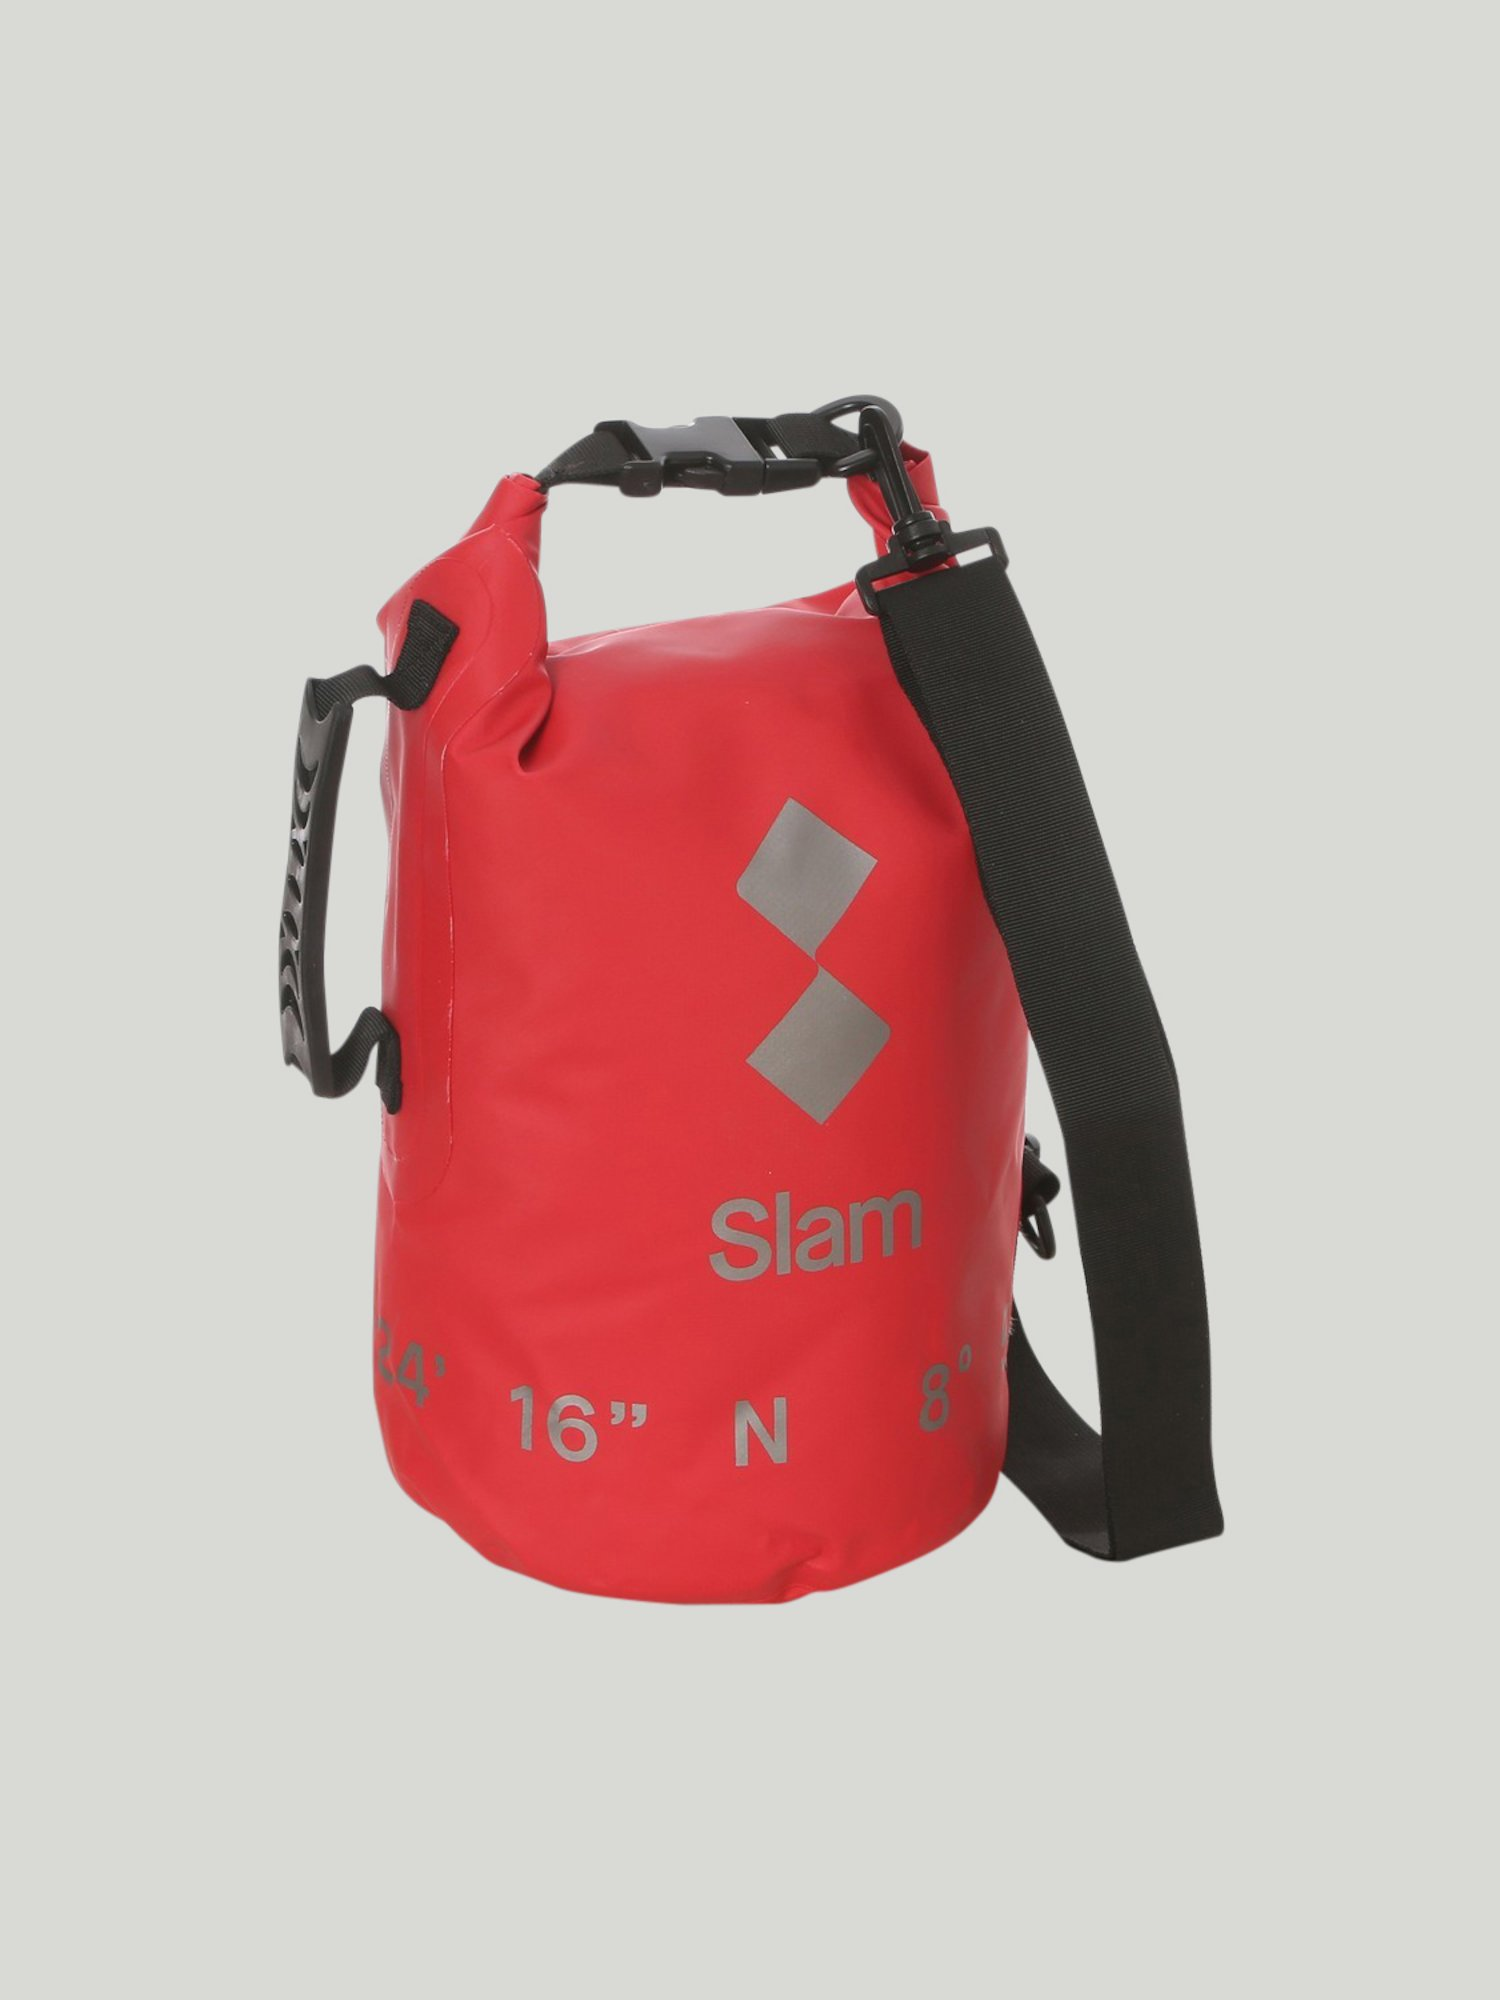 BAG PORT TALBOT - Slam Red